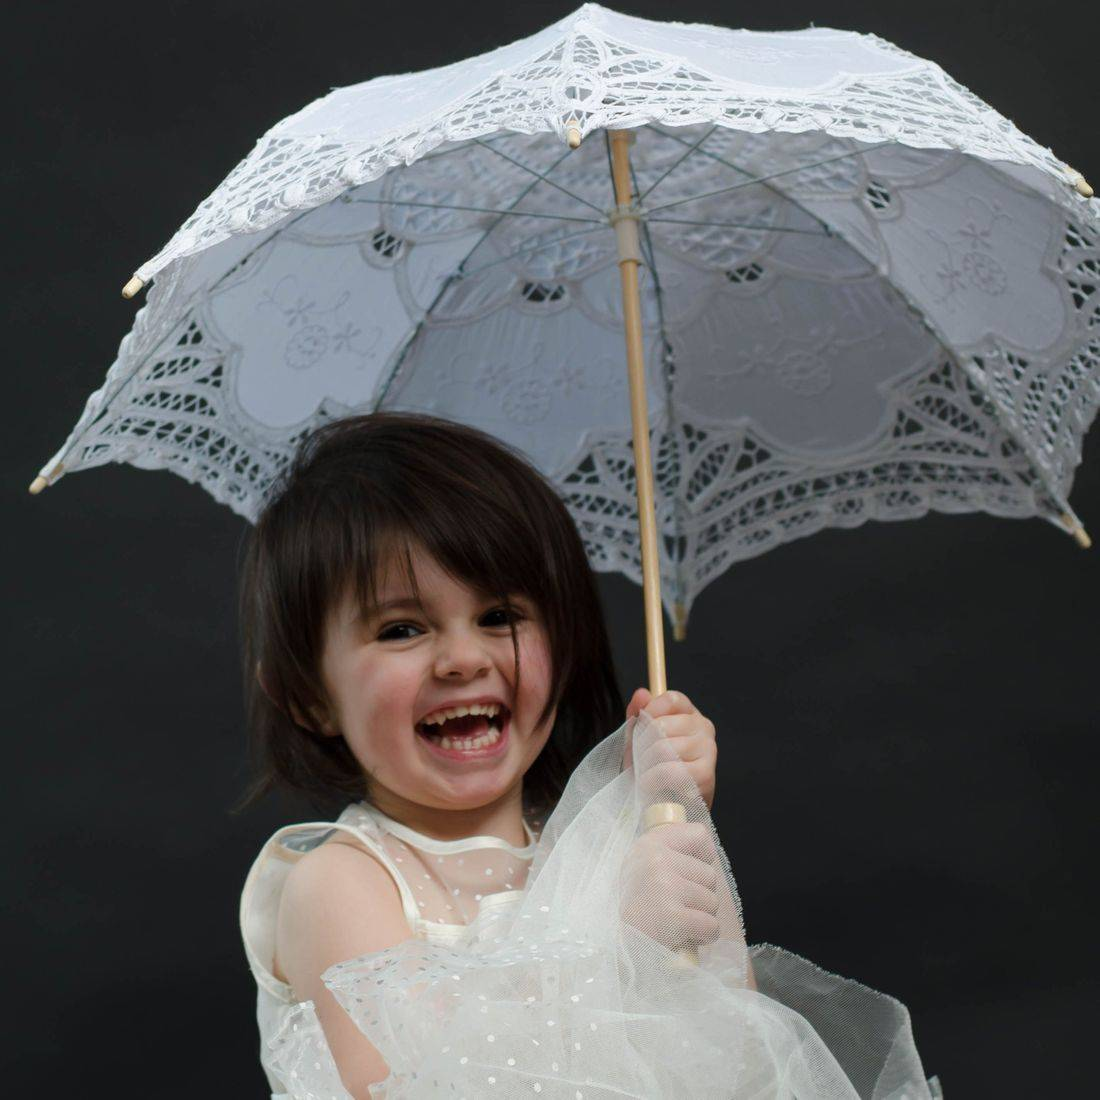 Cheap Louth Girly photoshoot, Grimsby child photographer, Child portrait.